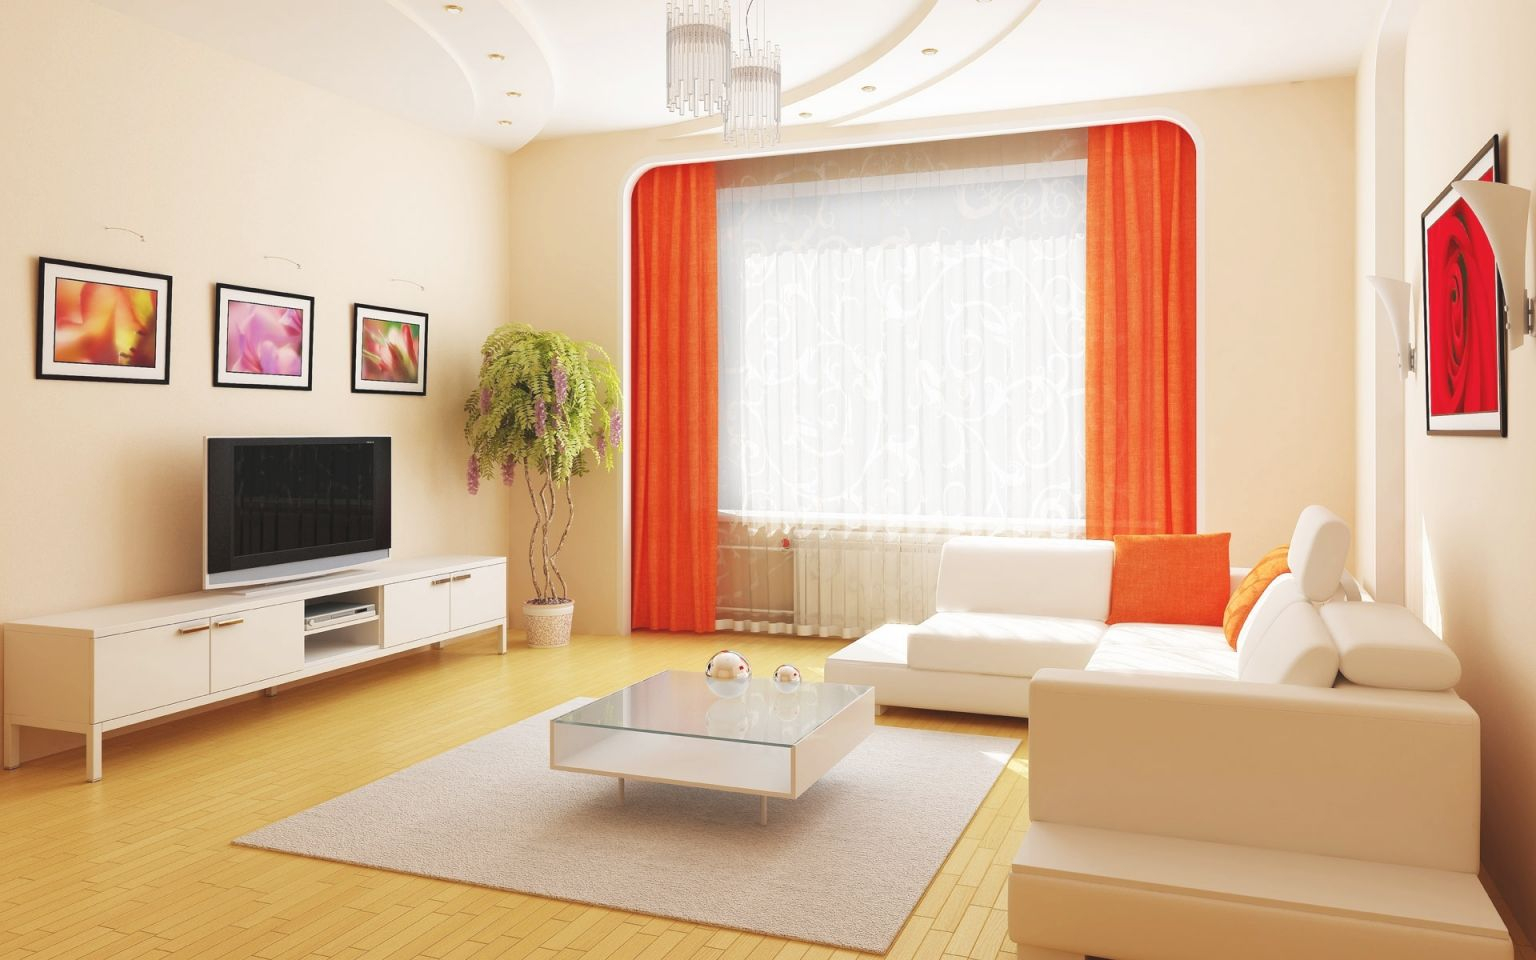 Simple Small Living Room Decorating Ideas Interior Design with regard to 15 Ideas Gallery For Small Living Room Decorating Ideas